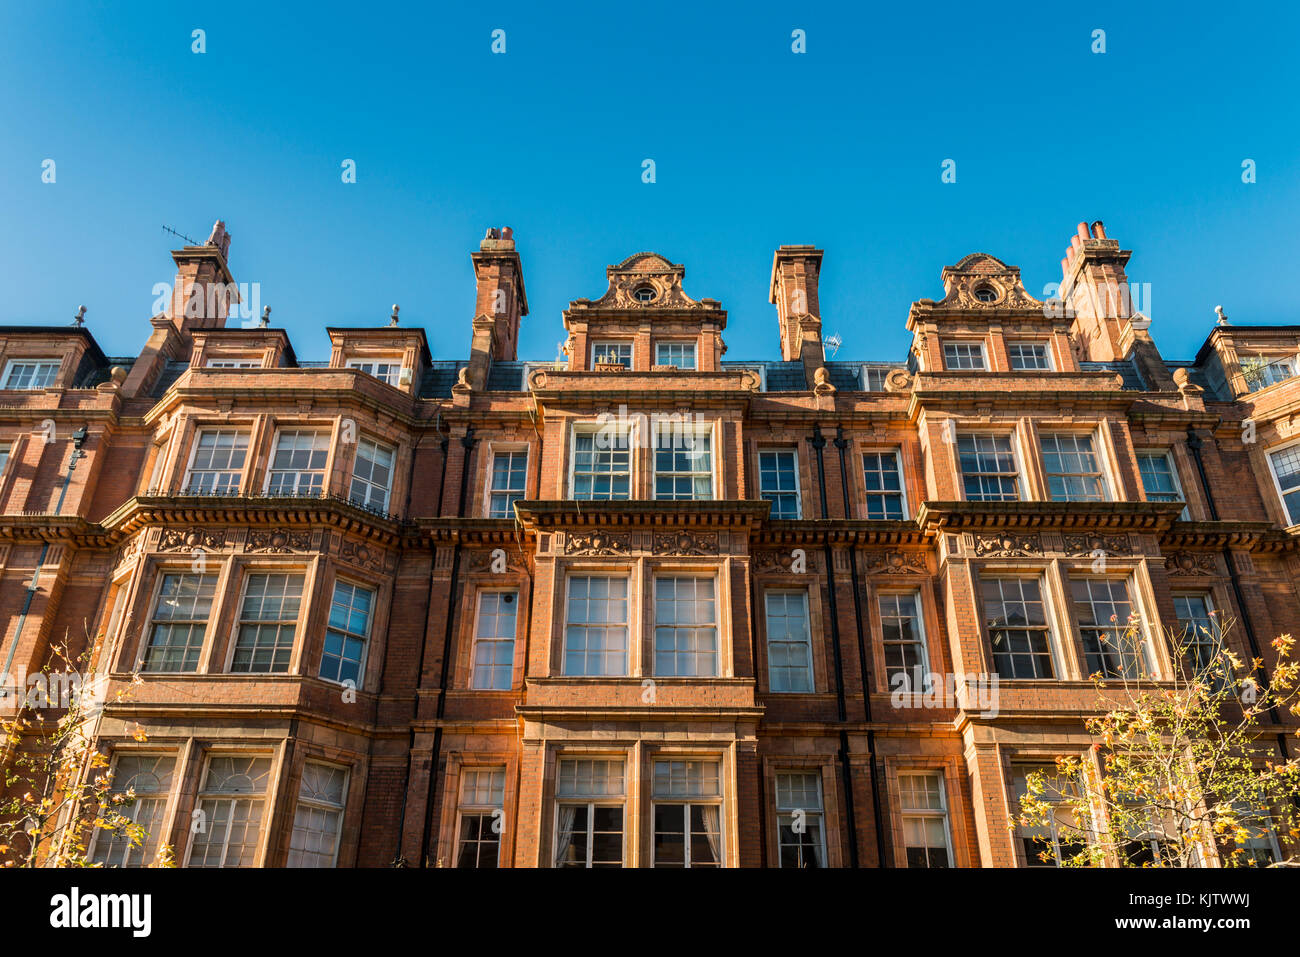 19th century buildings in Mayfair, London, UK on a sunny day - Stock Image